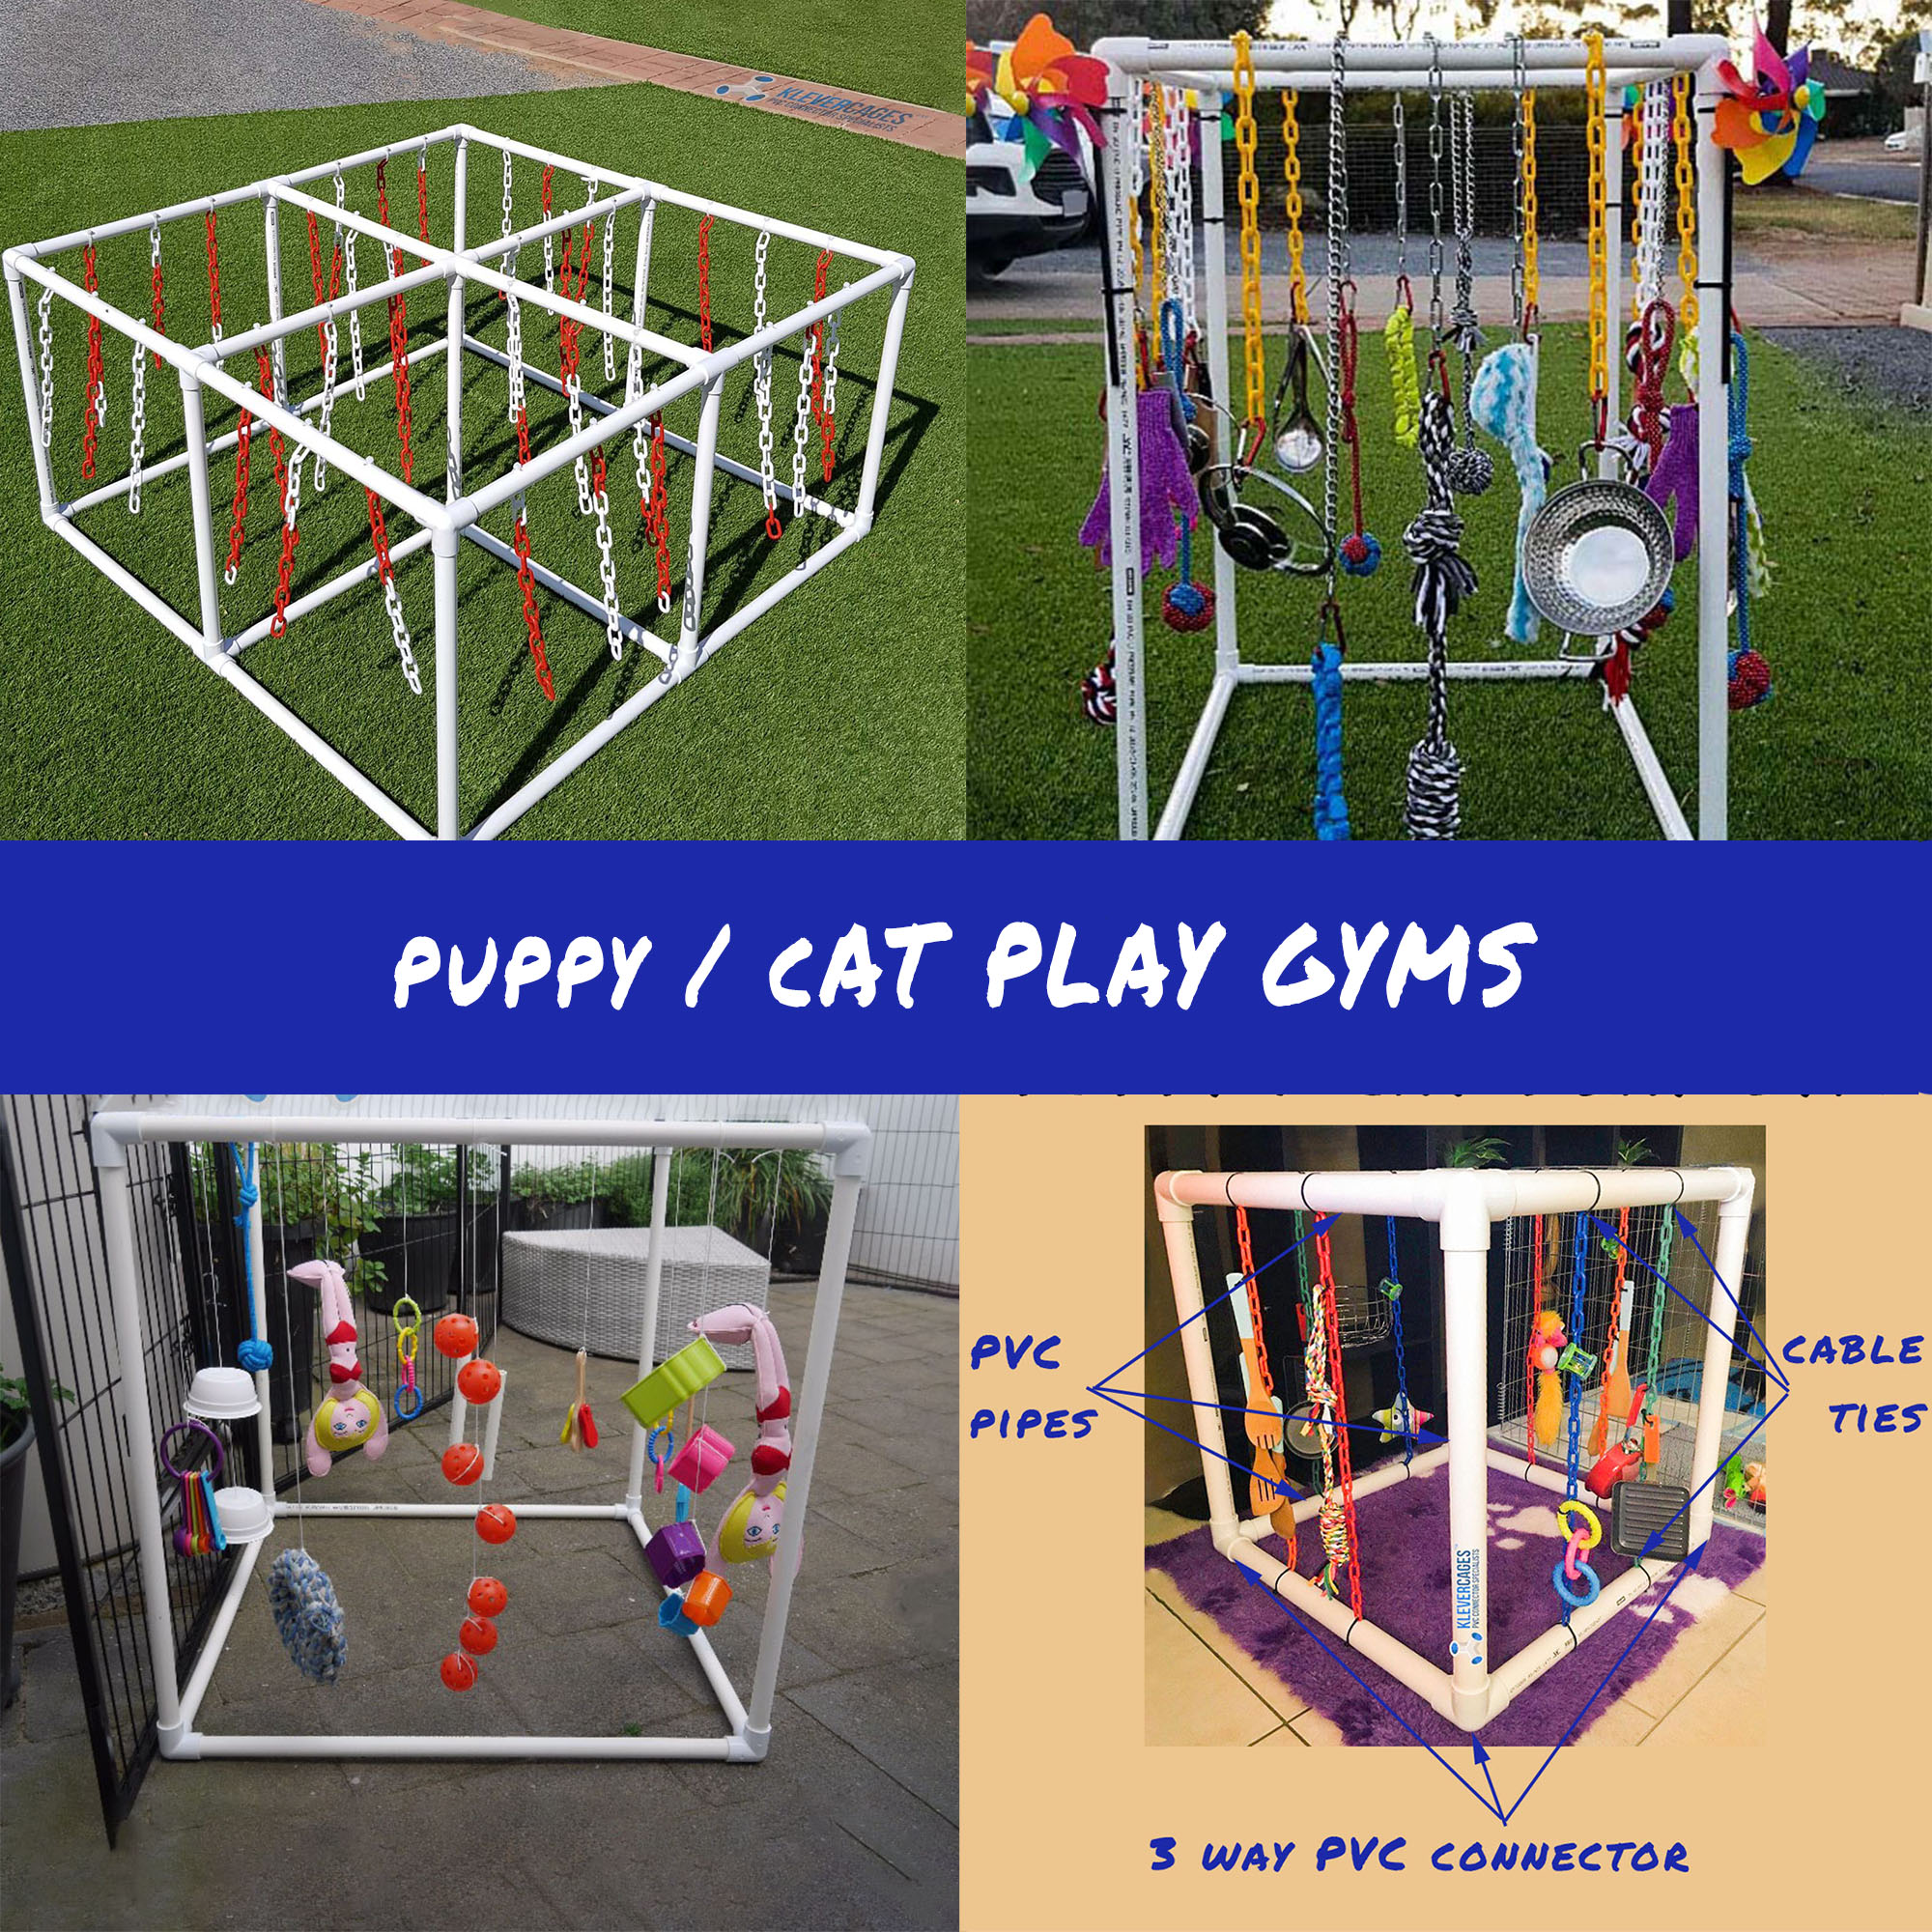 Build your own puppy cat play gym from 3way PVC connectors and PVC pipe from Klever Cages